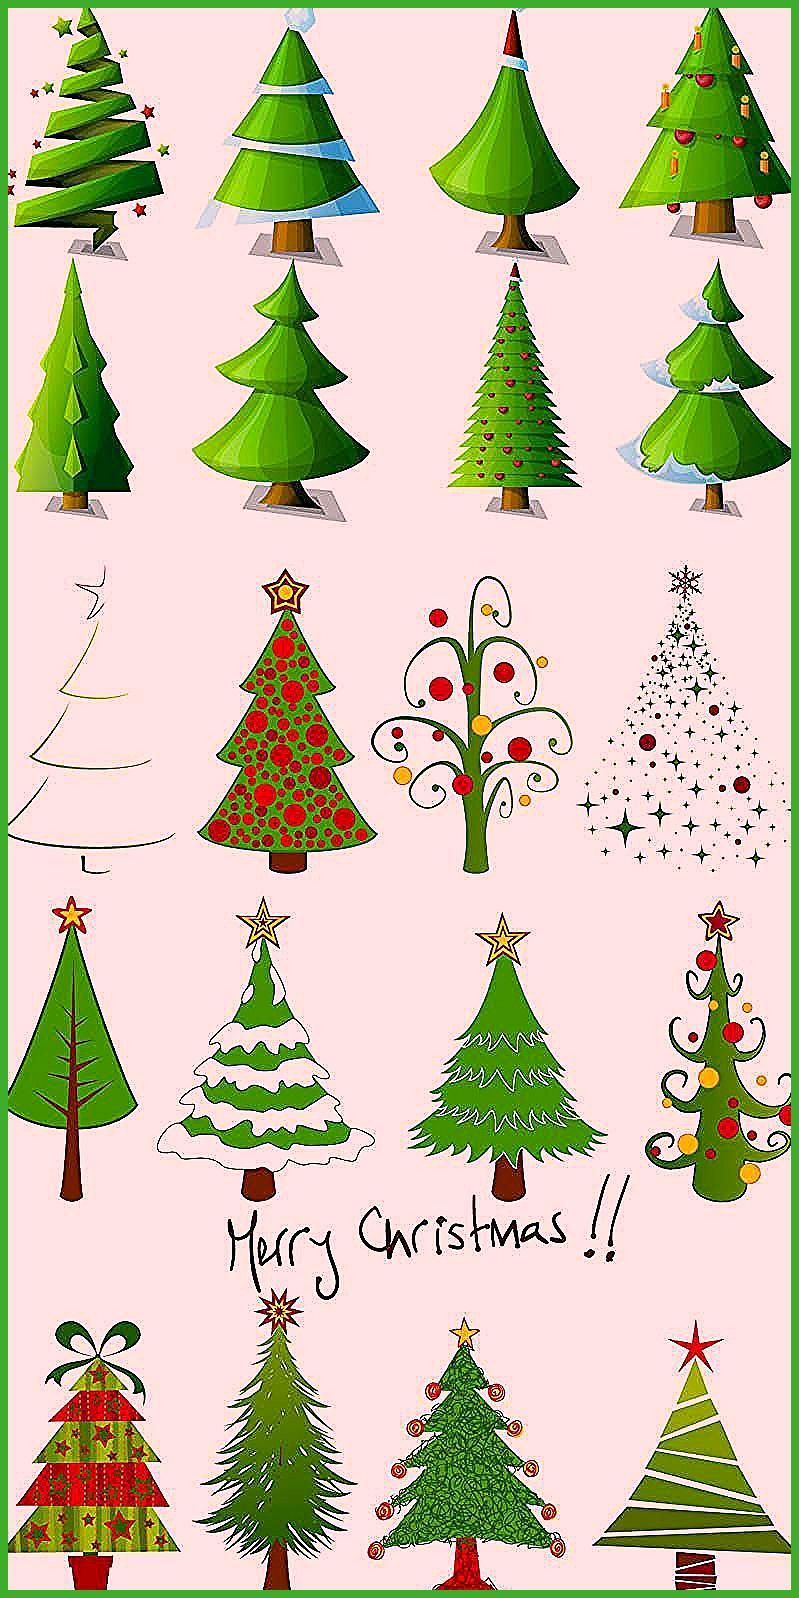 Christmas Tree Drawing The Small Awareness Of Probably The Most Passionate Party Of The Year Eieie Christmas Tree Drawing Ribbon On Christmas Tree Xmas Drawing